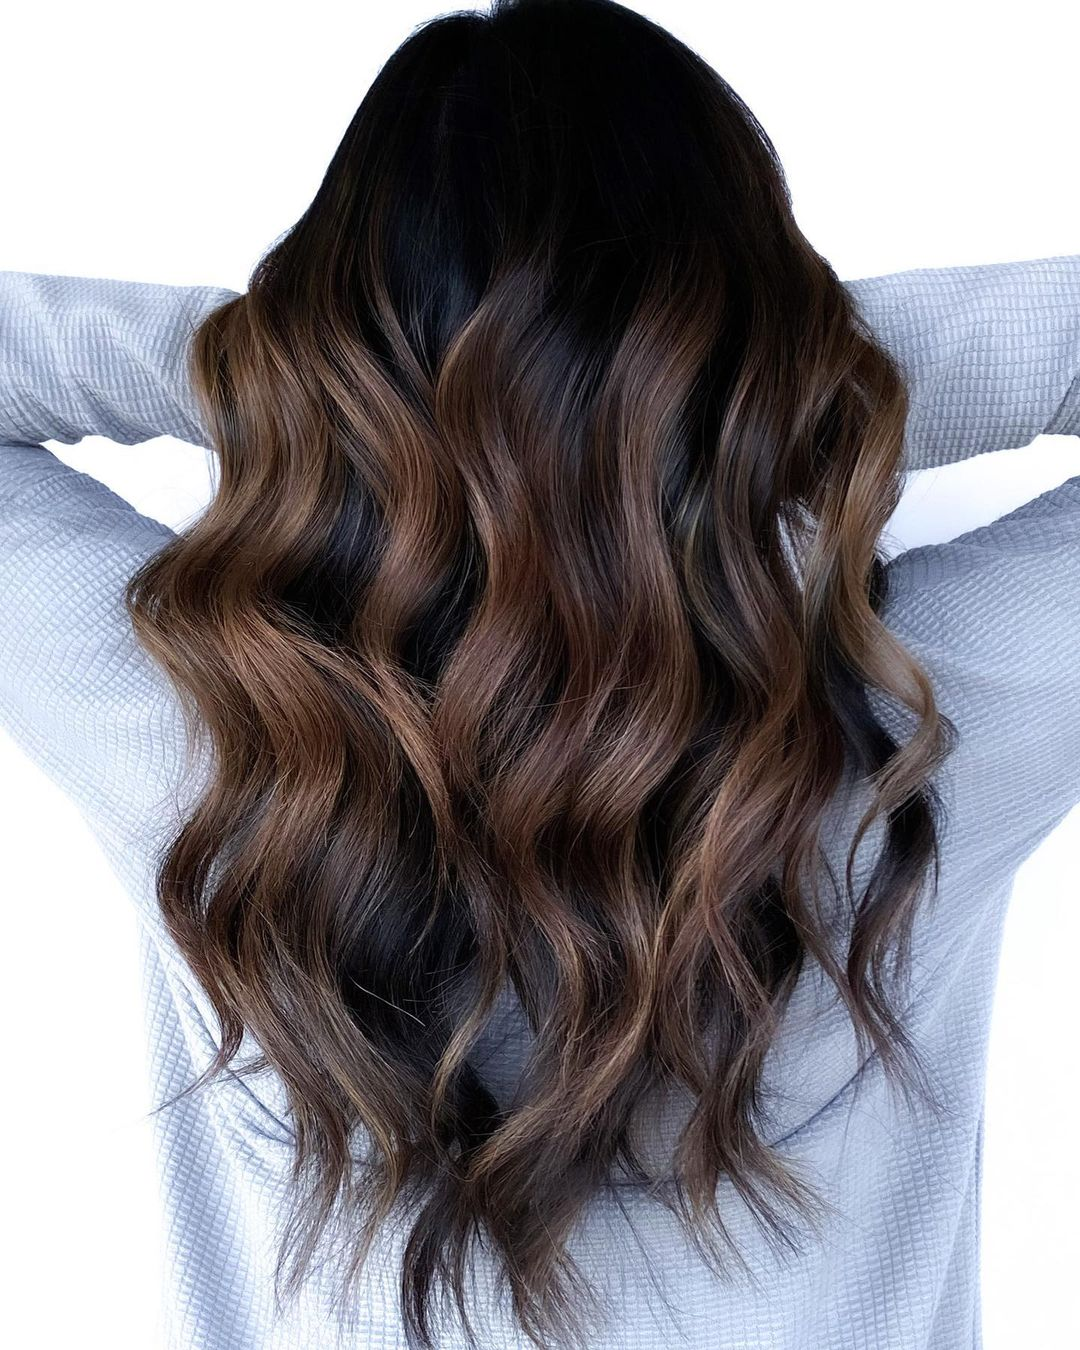 Black Shadow Roots for Brunette Hair